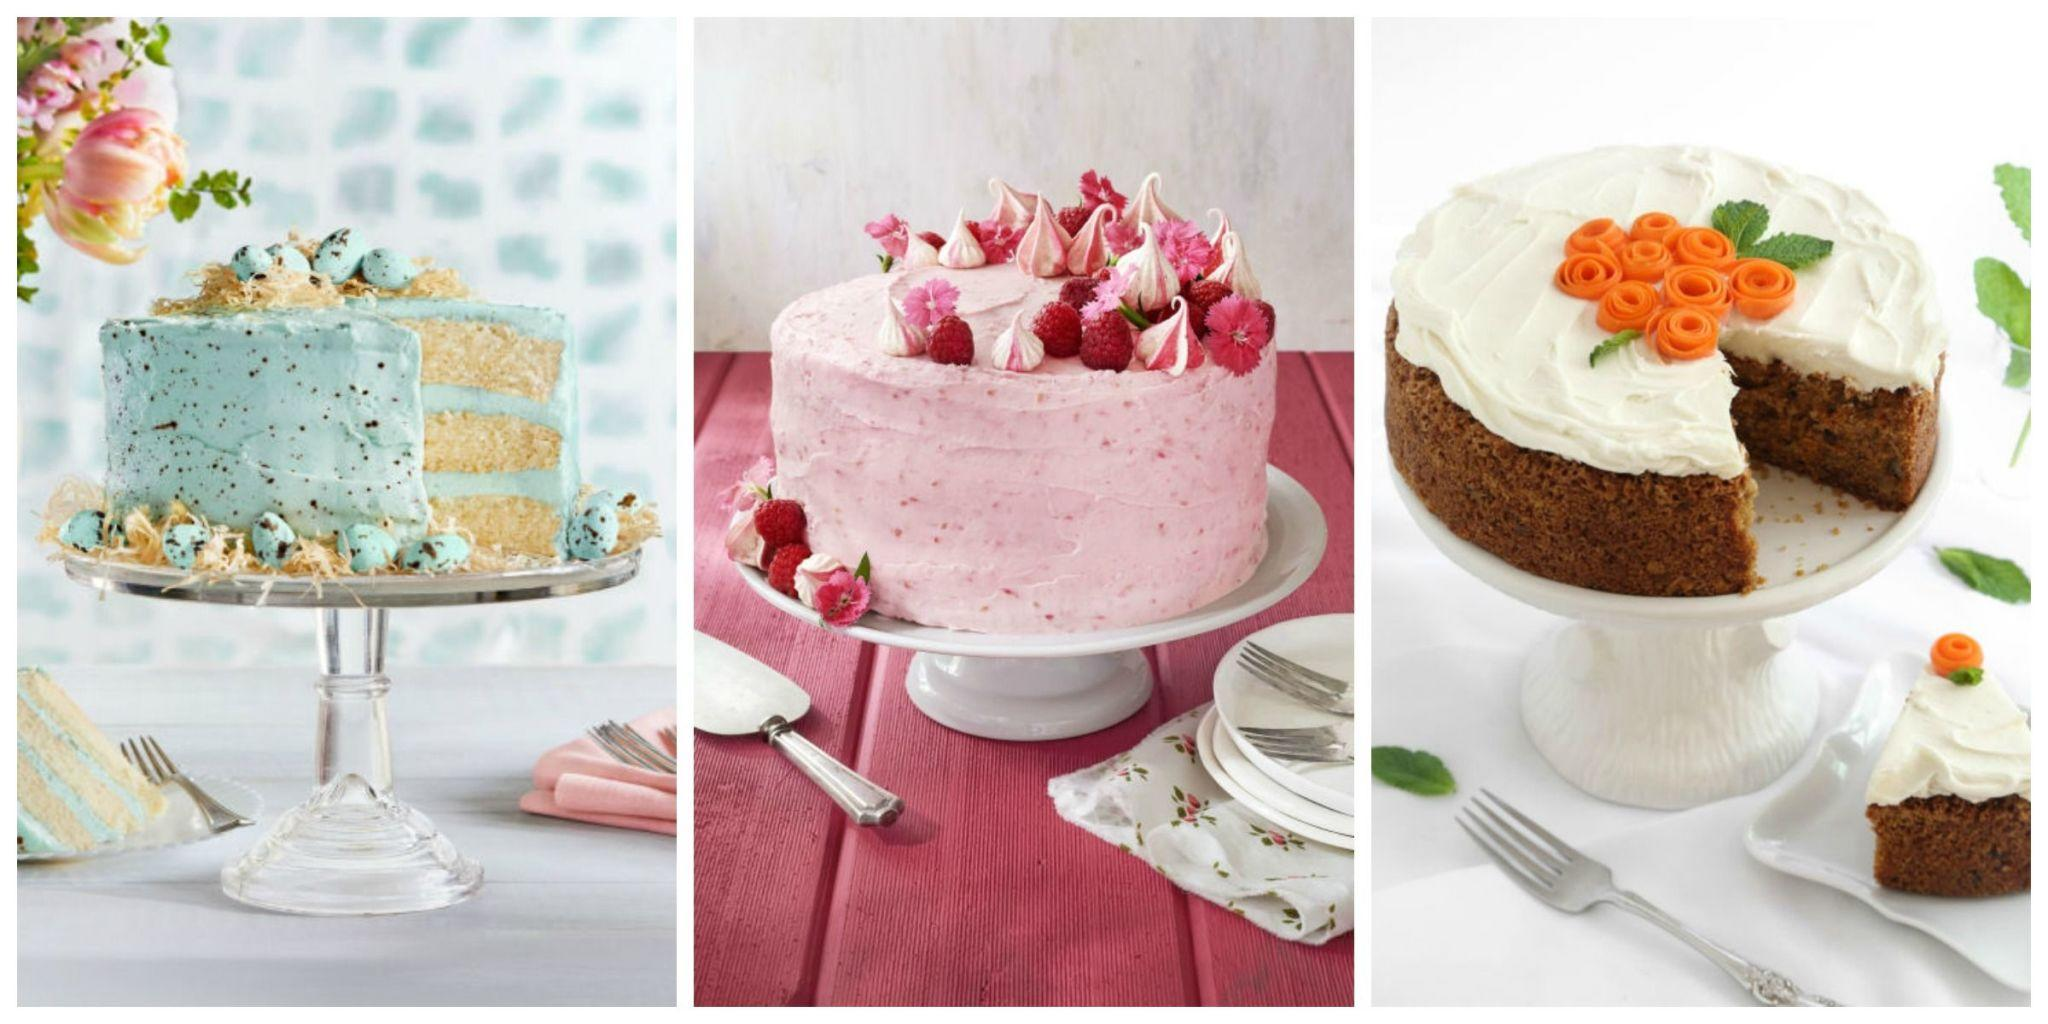 15 of the Most Beautiful Homemade Cake Decorating Ideas